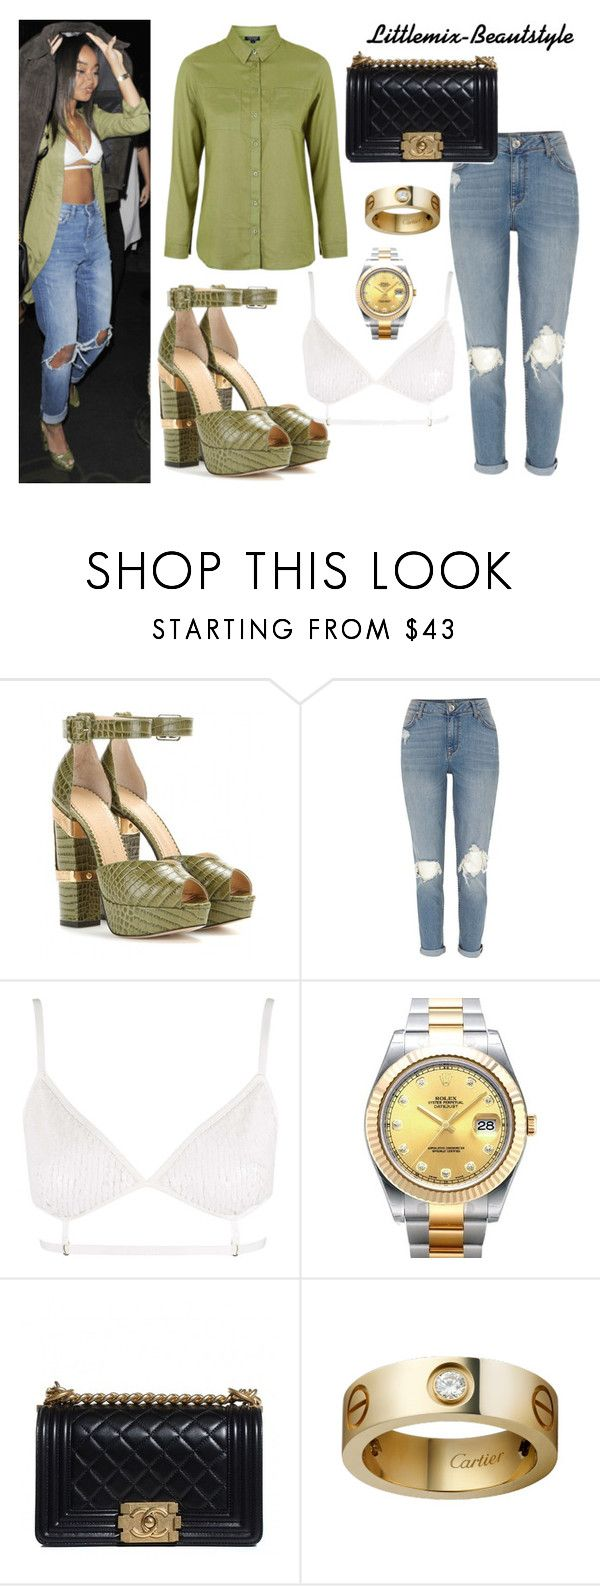 """""""Leigh at Mahiki Nightclub - January 16, 2016"""" by littlemix-beautstyle ❤ liked on Polyvore featuring Charlotte Olympia, River Island, Topshop, Rolex, Chanel, women's clothing, women's fashion, women, female and woman"""